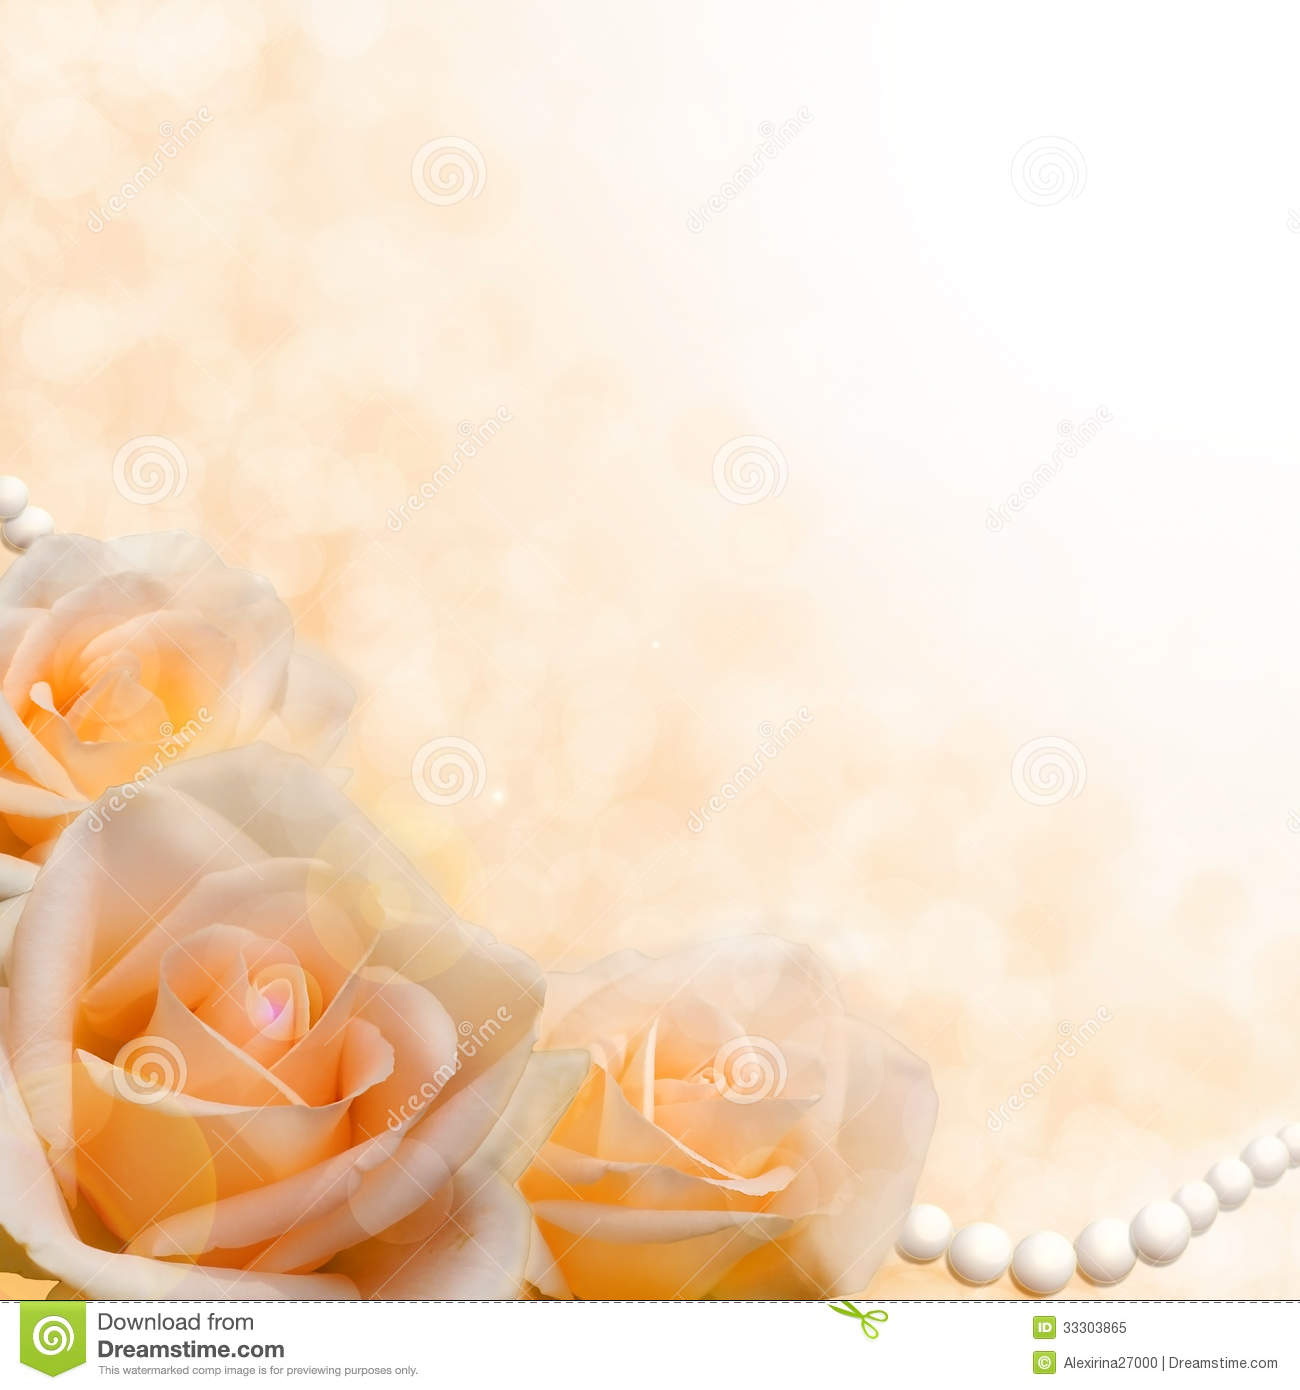 Soft cream roses on blurred background stock image image for Cream rose wallpaper